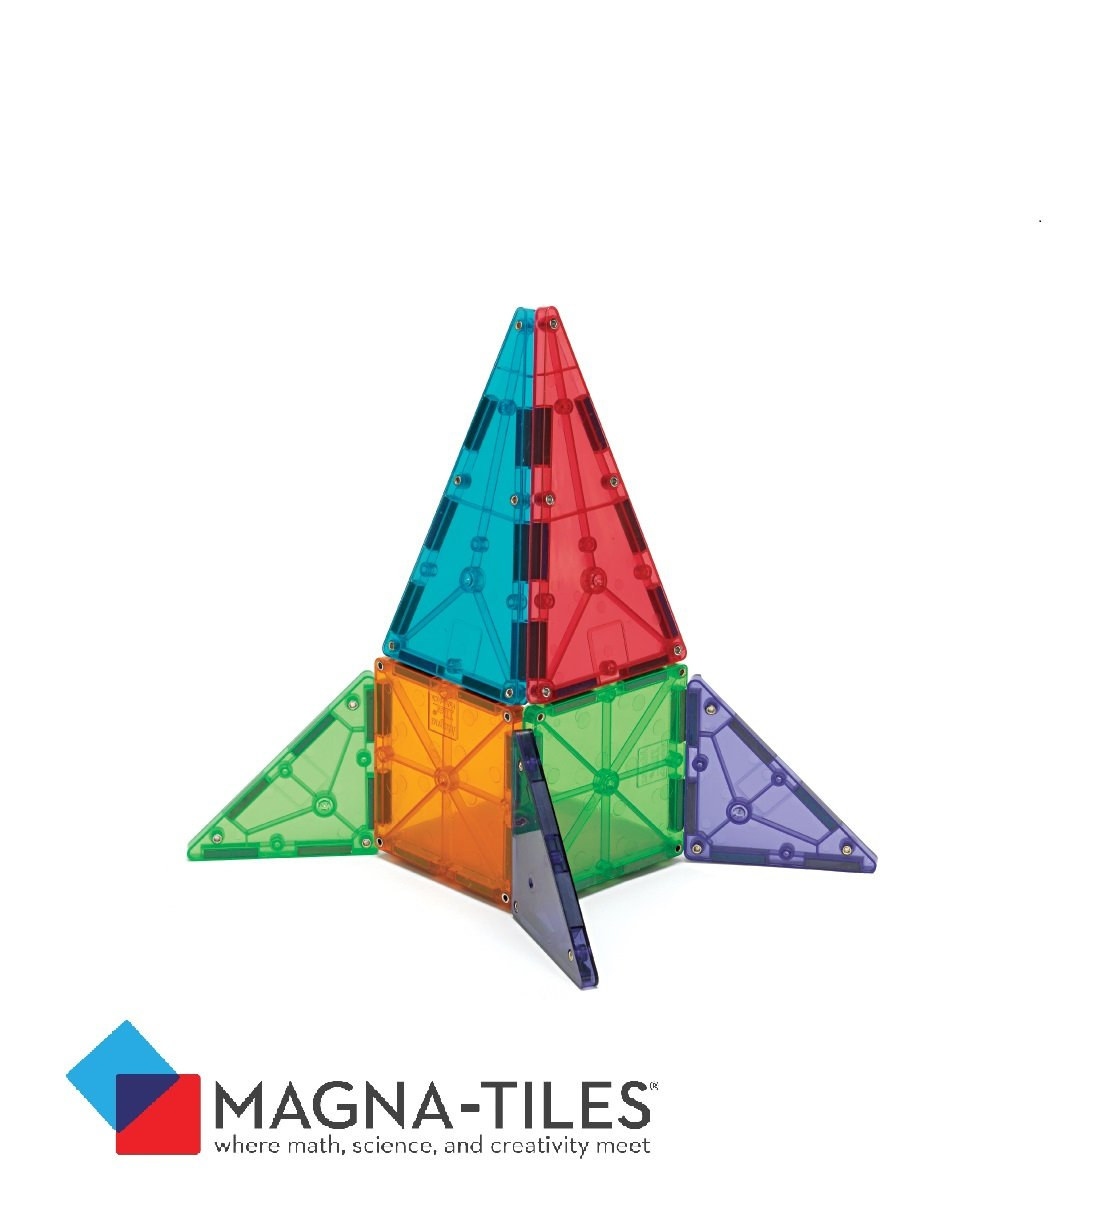 Shop for magna tiles clearance online at Target. Free shipping & returns and save 5% every day with your Target REDcard.